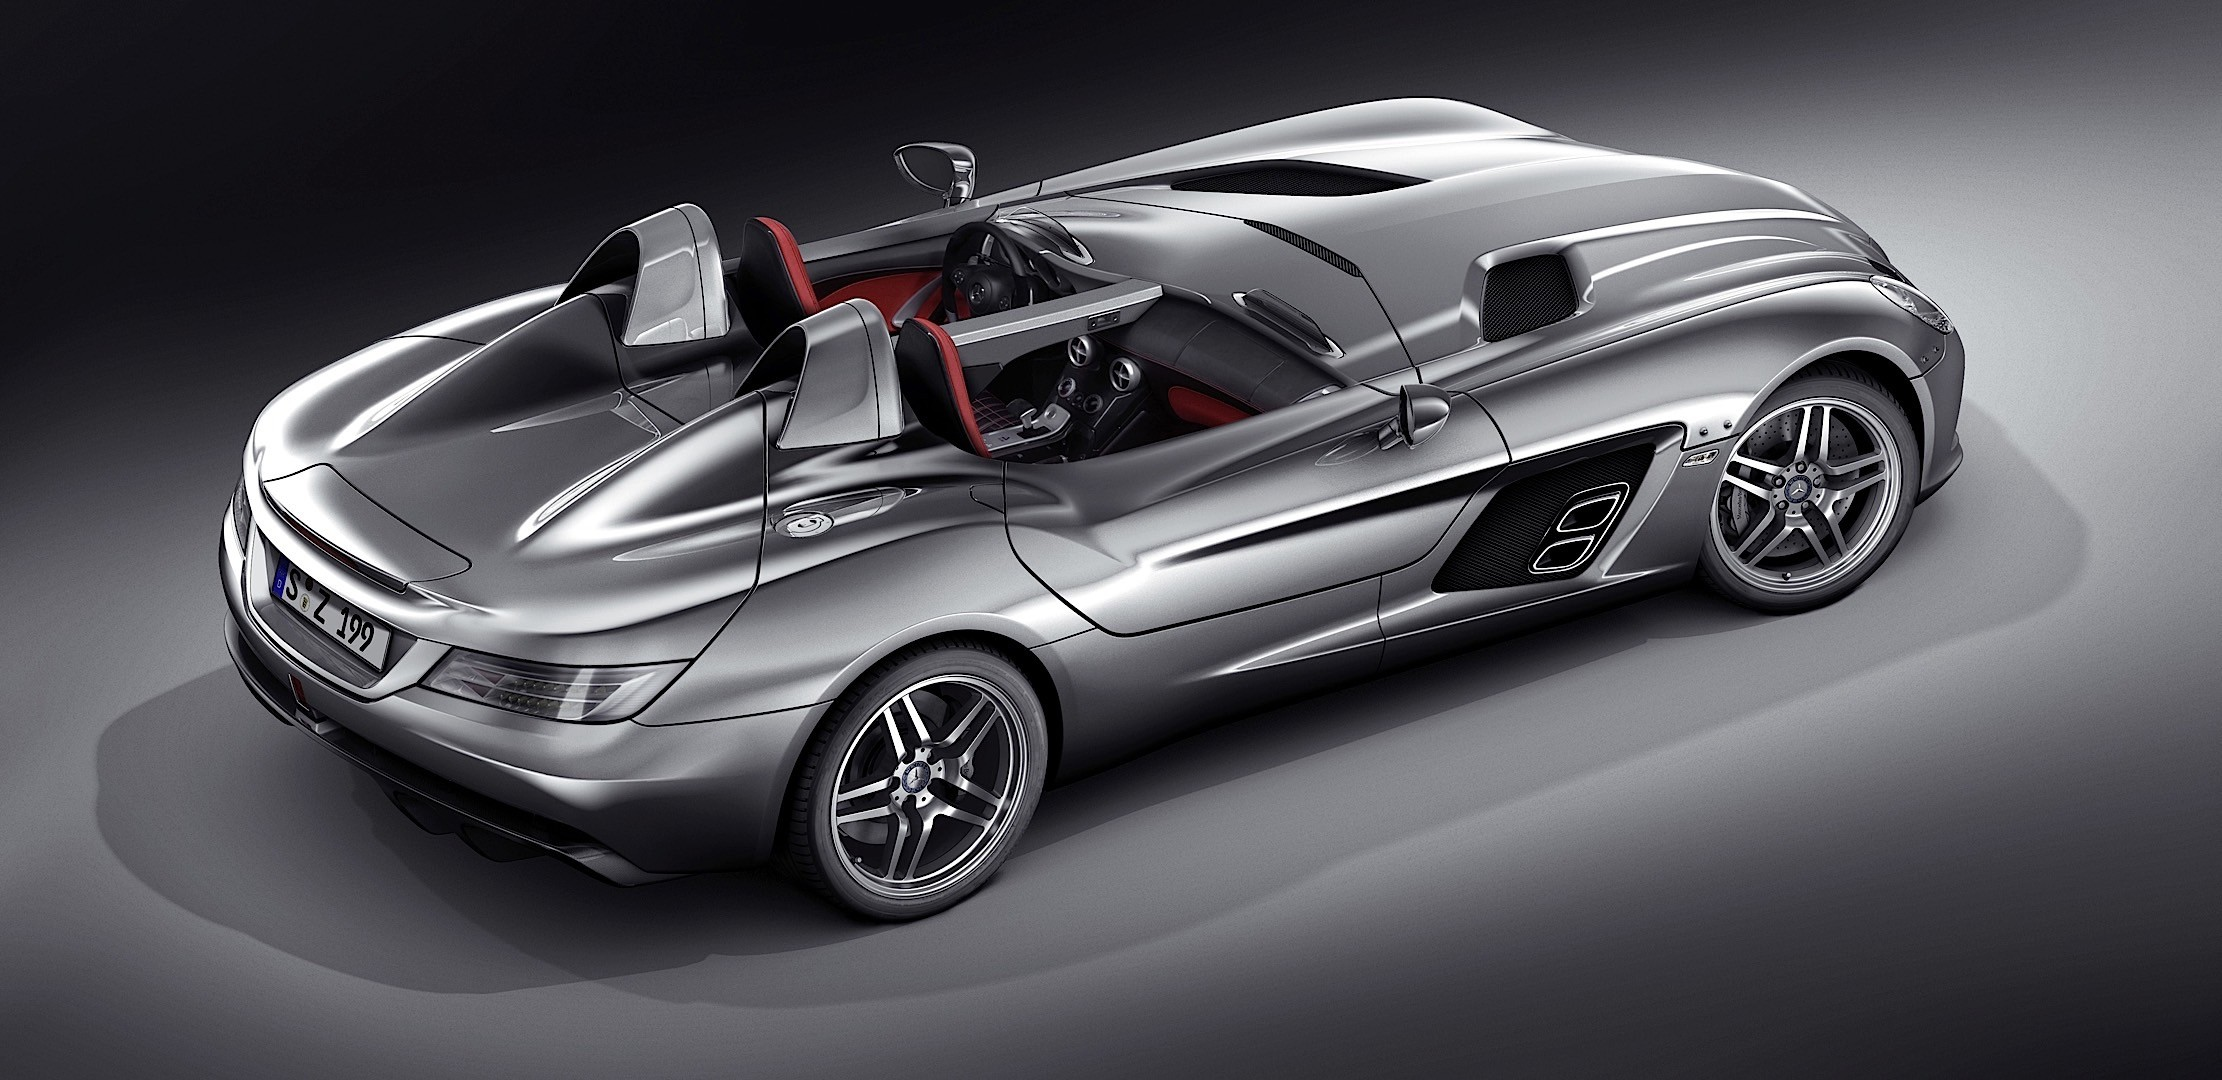 Mercedes Benz Slr Stirling Moss Specs 2009 Autoevolution